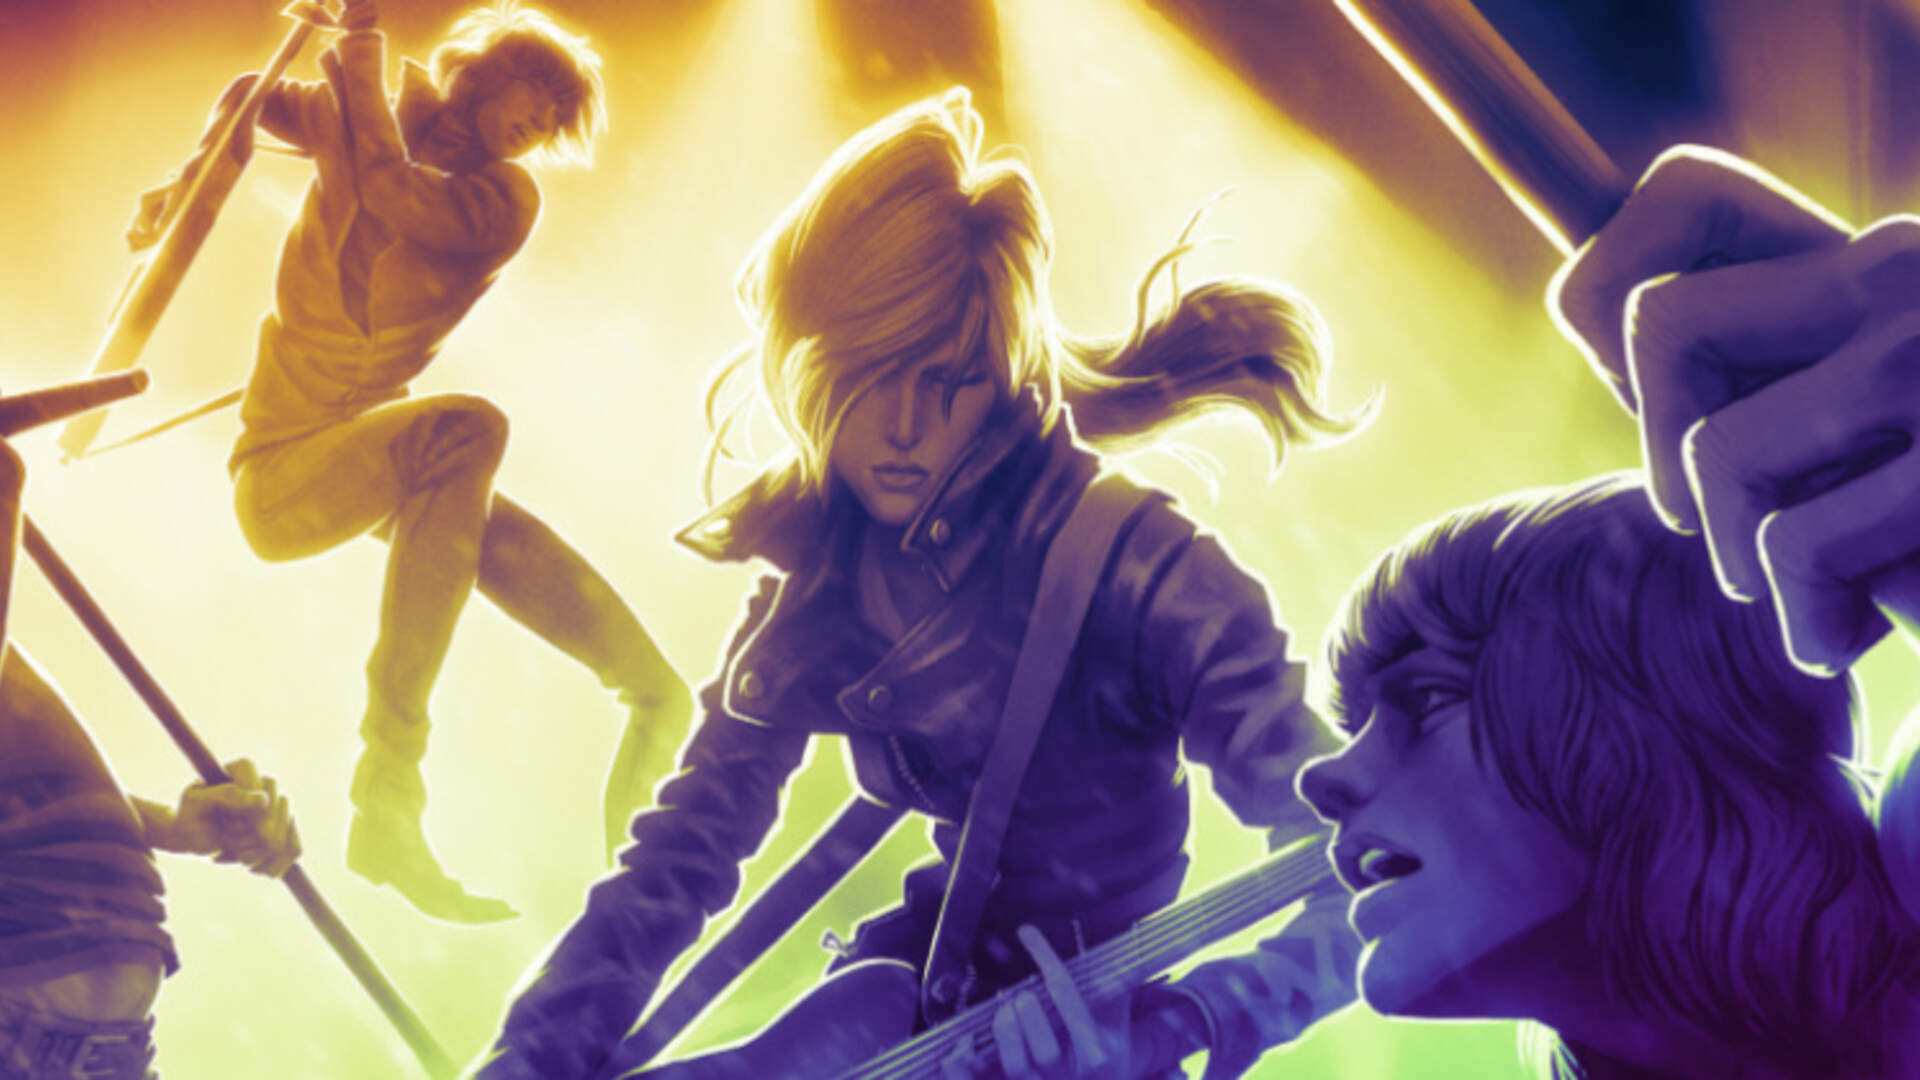 Rock Band 4 is Coming in 2015, Your Old DLC Still Works